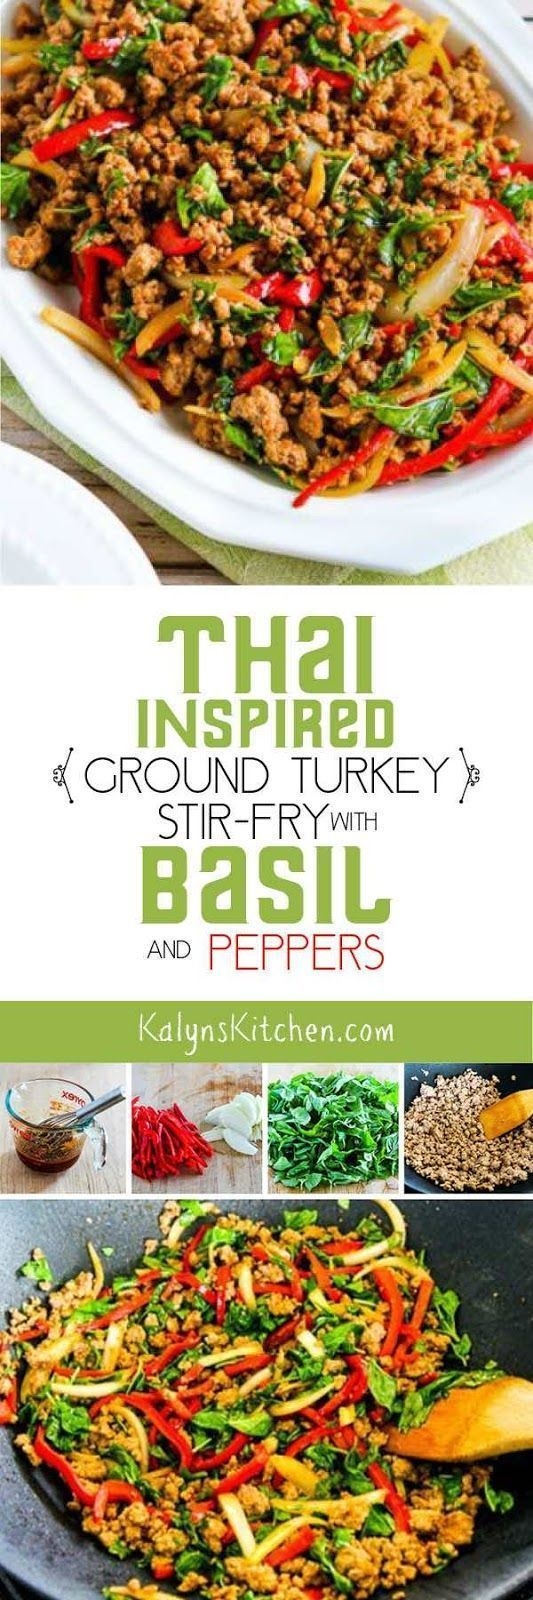 Photo of Thai-Inspired Ground Turkey Stir-Fry with Basil and Peppers – Kalyn's Kitchen